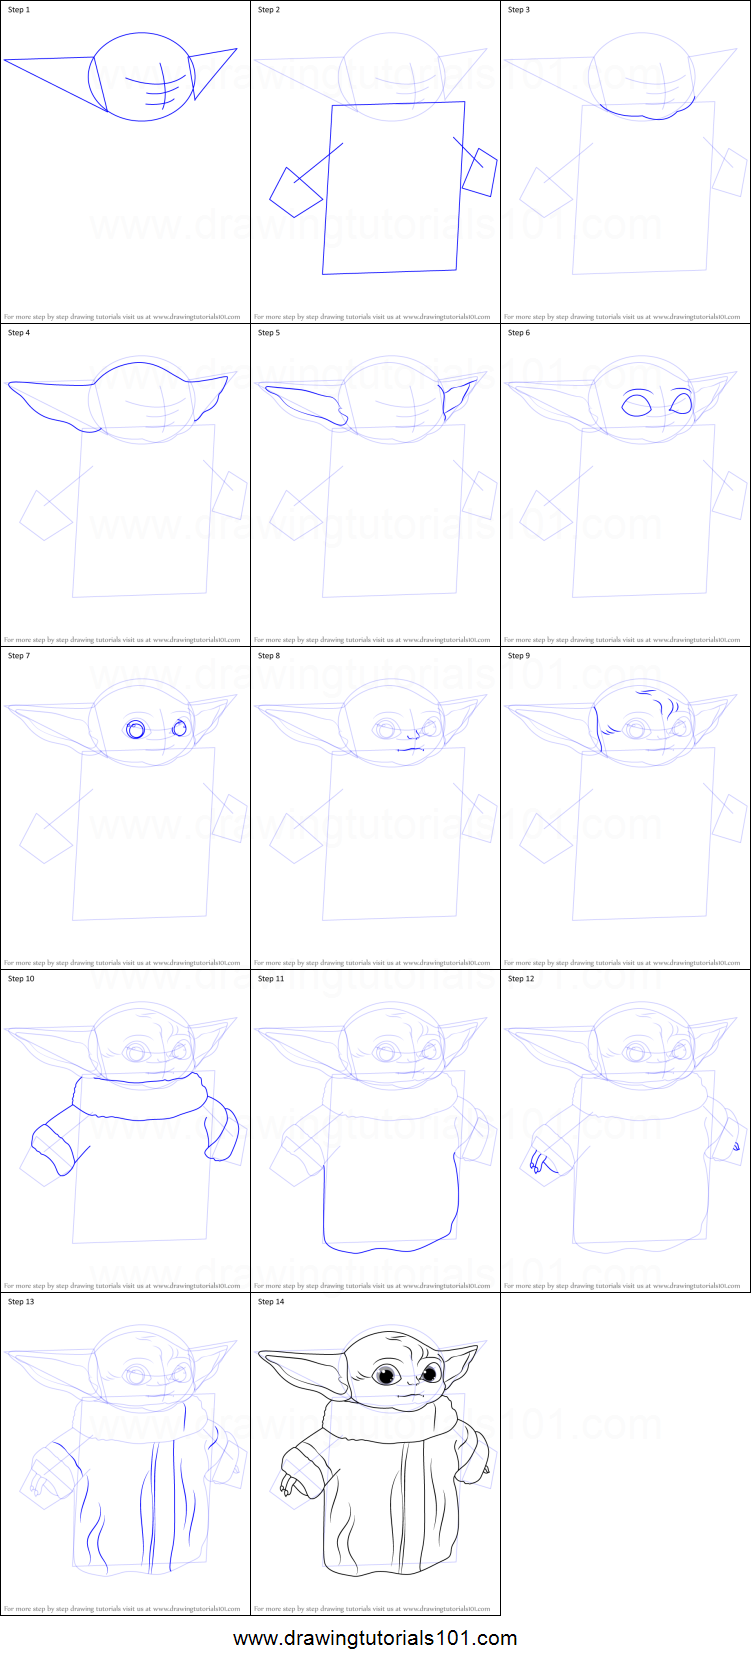 How To Draw A Baby Yoda Printable Step By Step Drawing Sheet Drawingtutorials101 Com Yoda Drawing Disney Drawing Tutorial Easy Disney Drawings